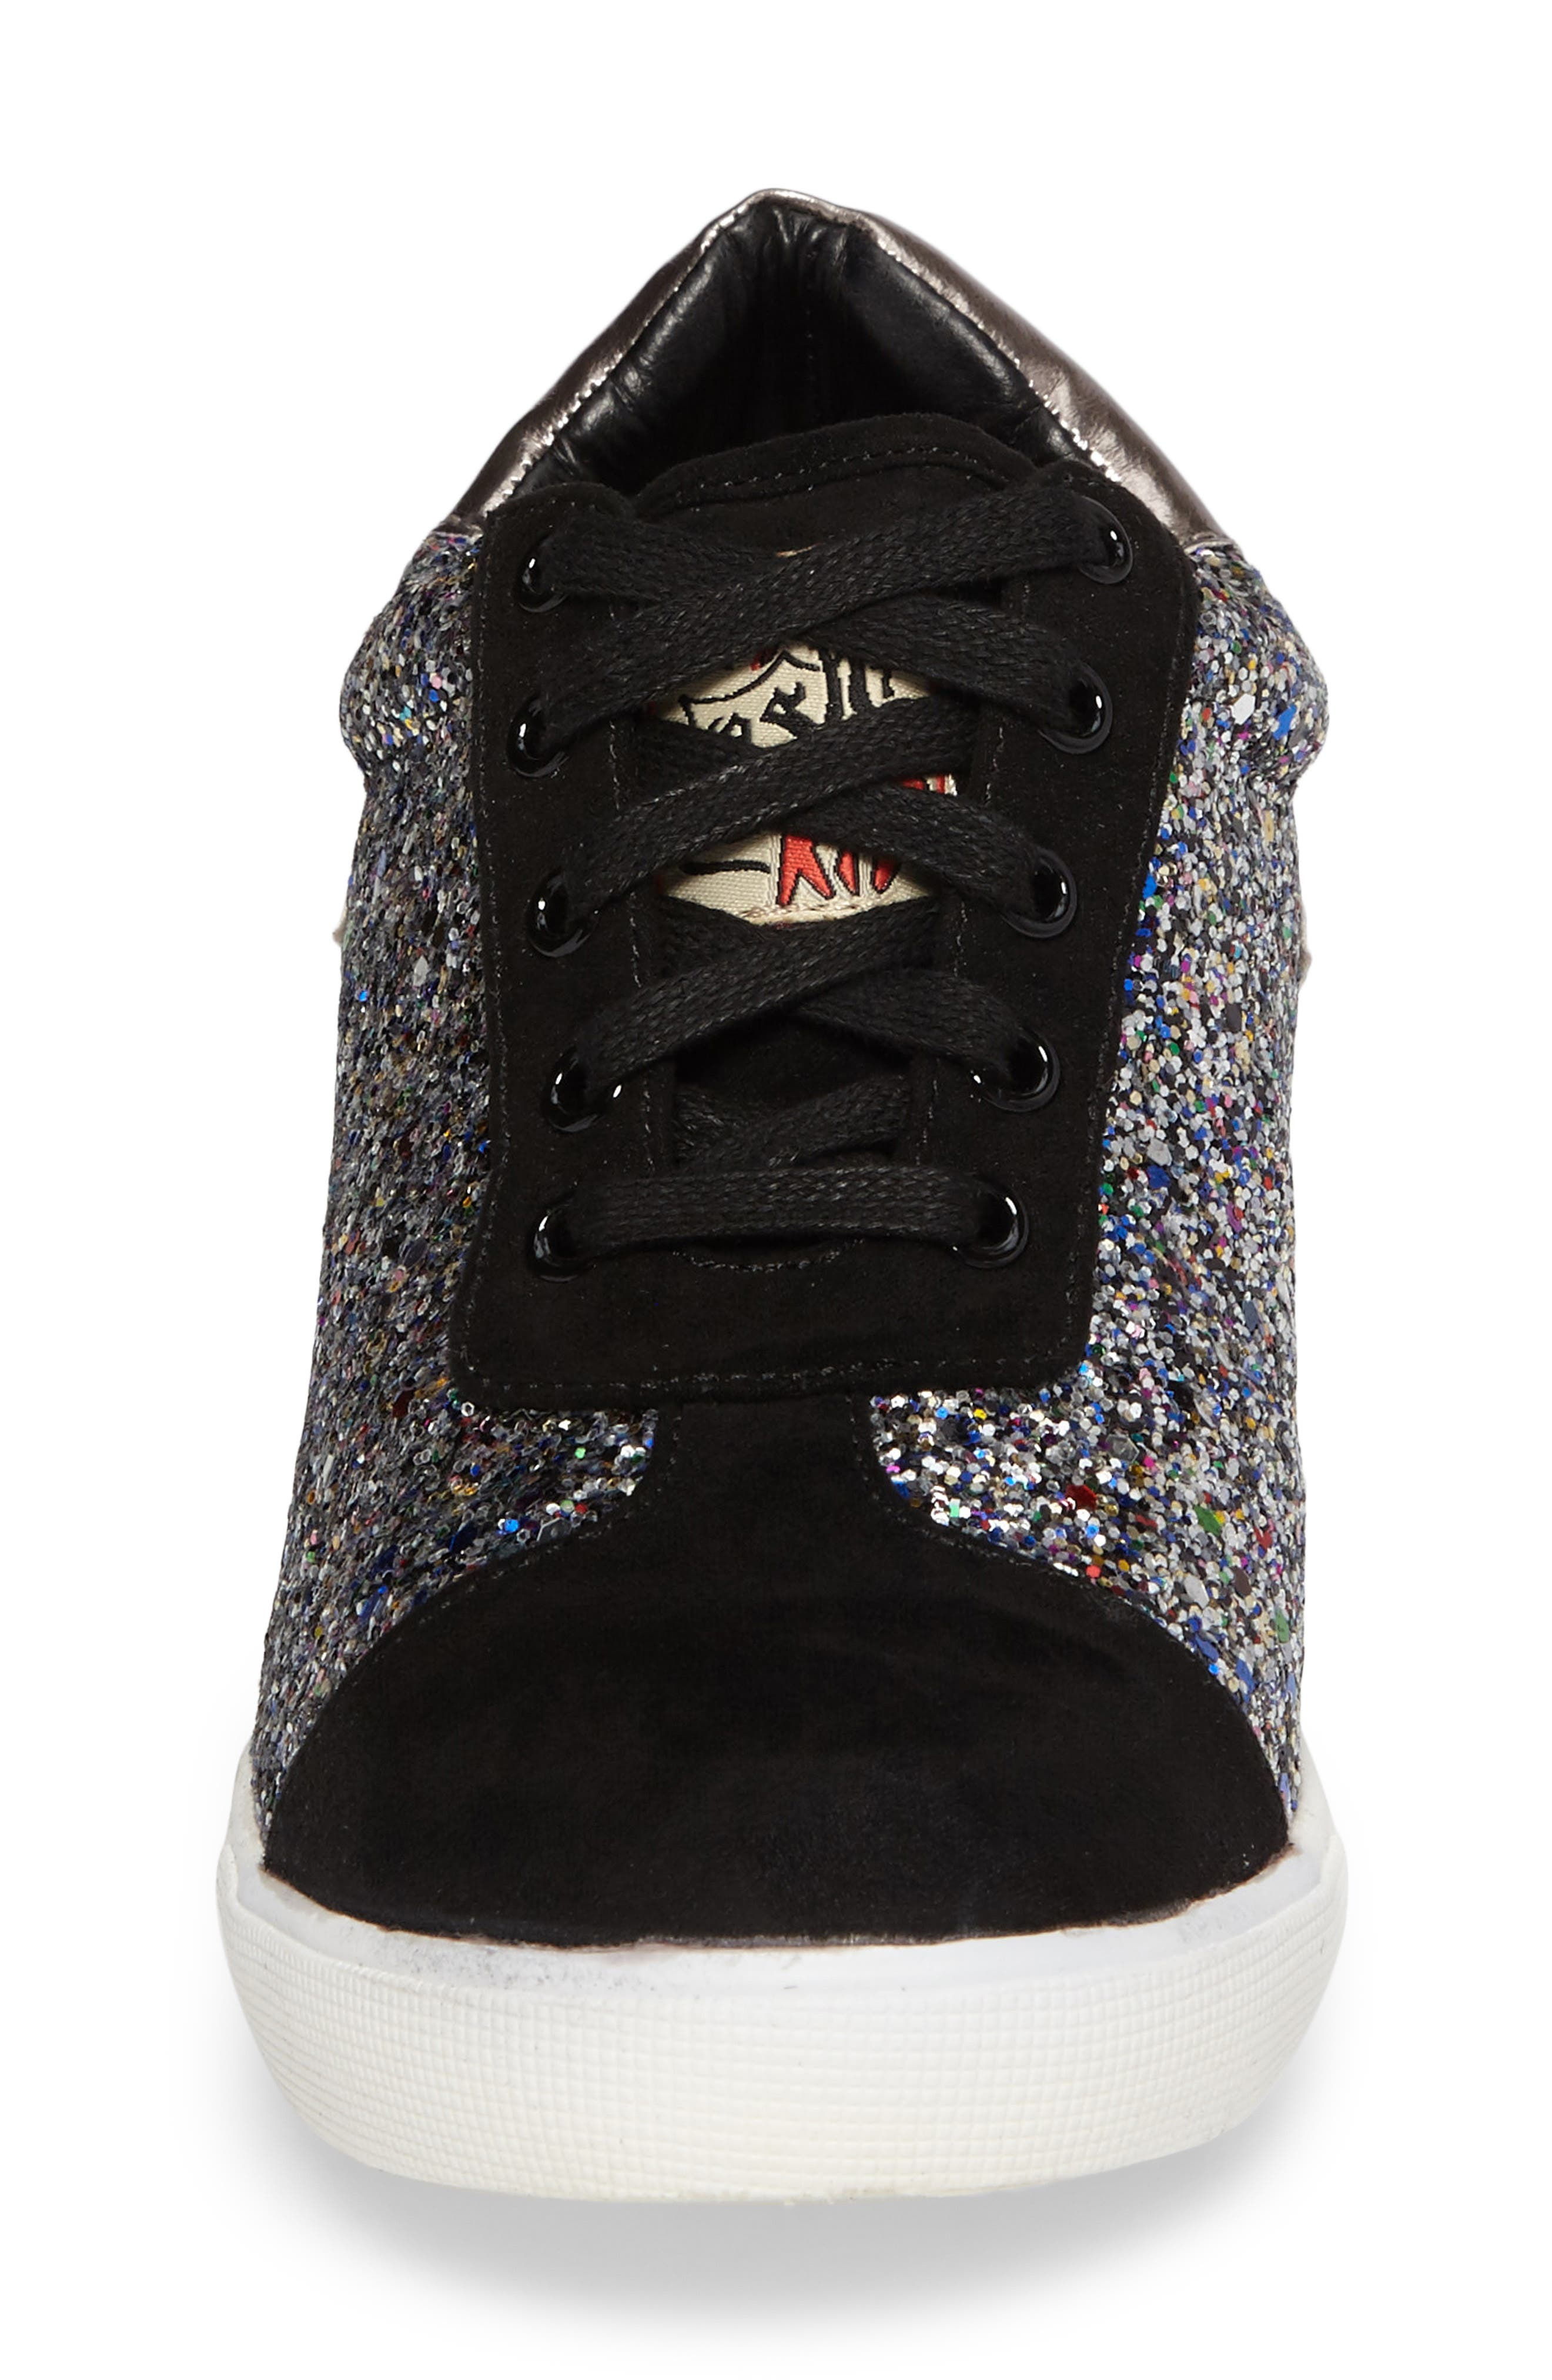 Alternate Image 4  - Ash Low Star Glittery Concealed Wedge Sneaker (Toddler, Little Kid & Big Kid)